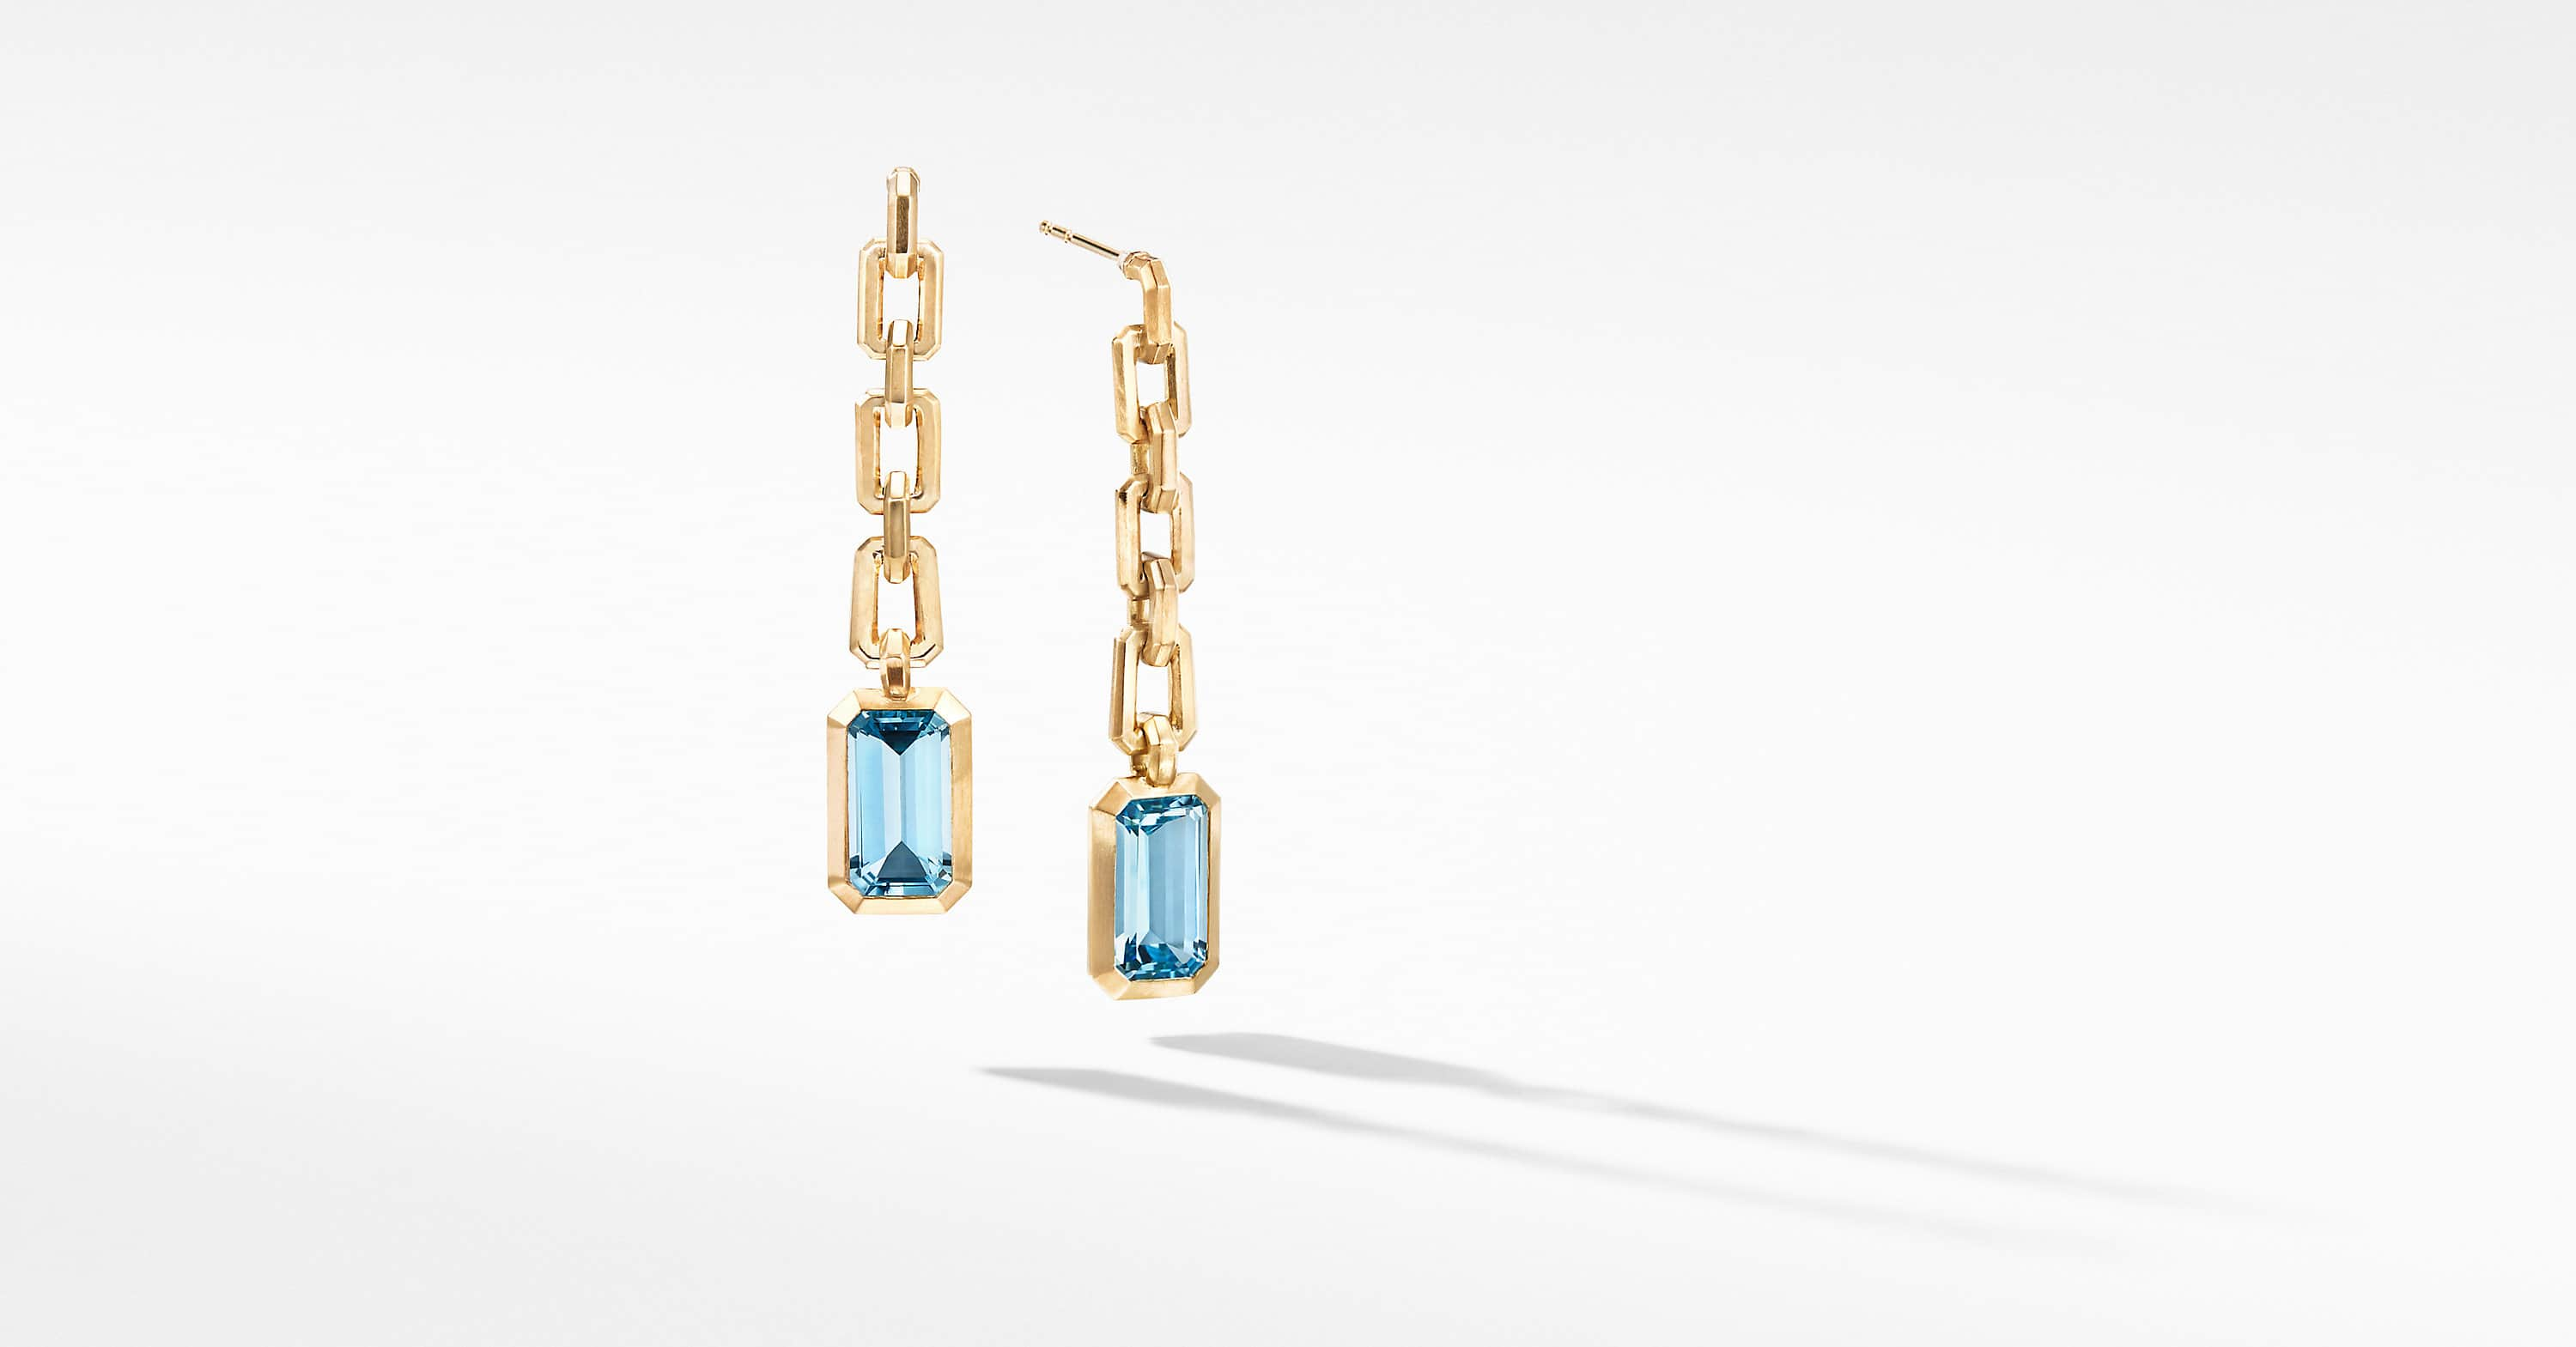 Novella Chain Drop Earrings in 18K Yellow Gold